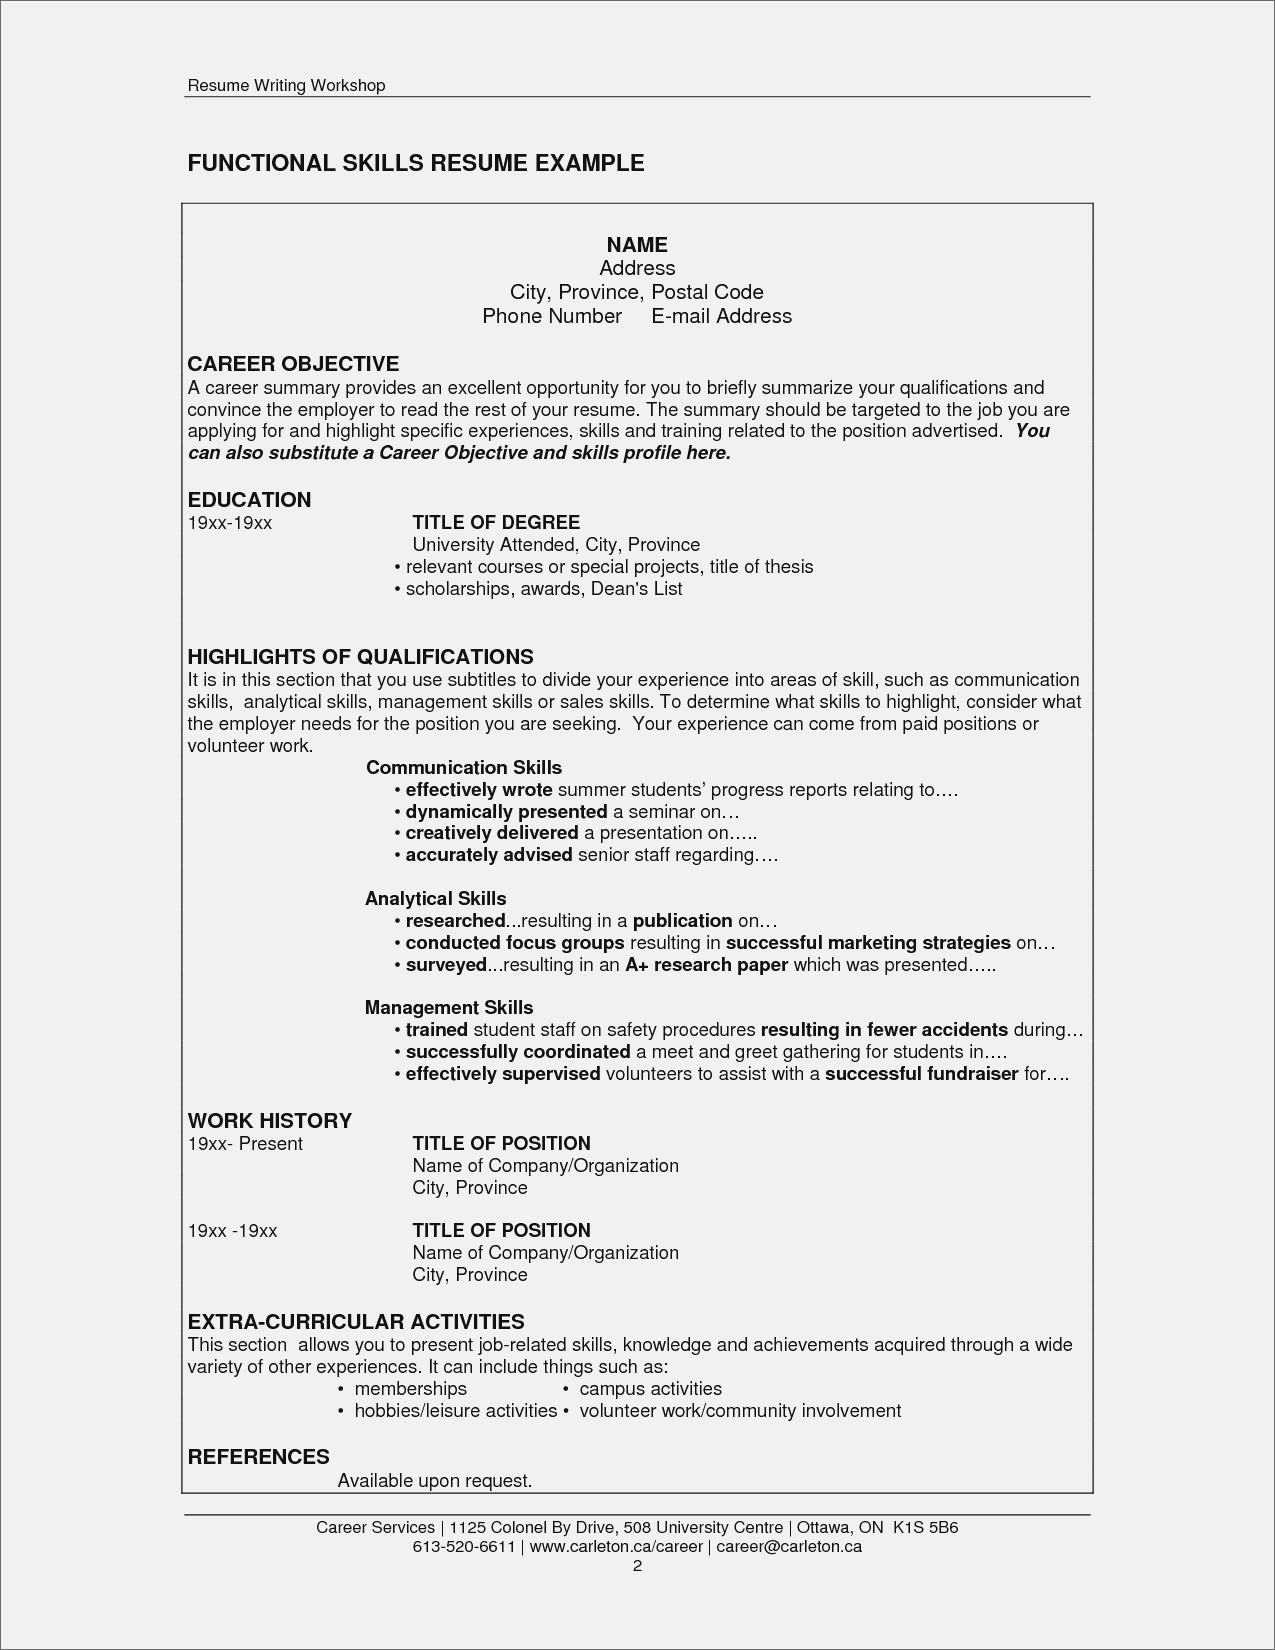 Skills You Can Put On A Resume - Skills and Abilities to Put A Resume Refrence Resume Skills and